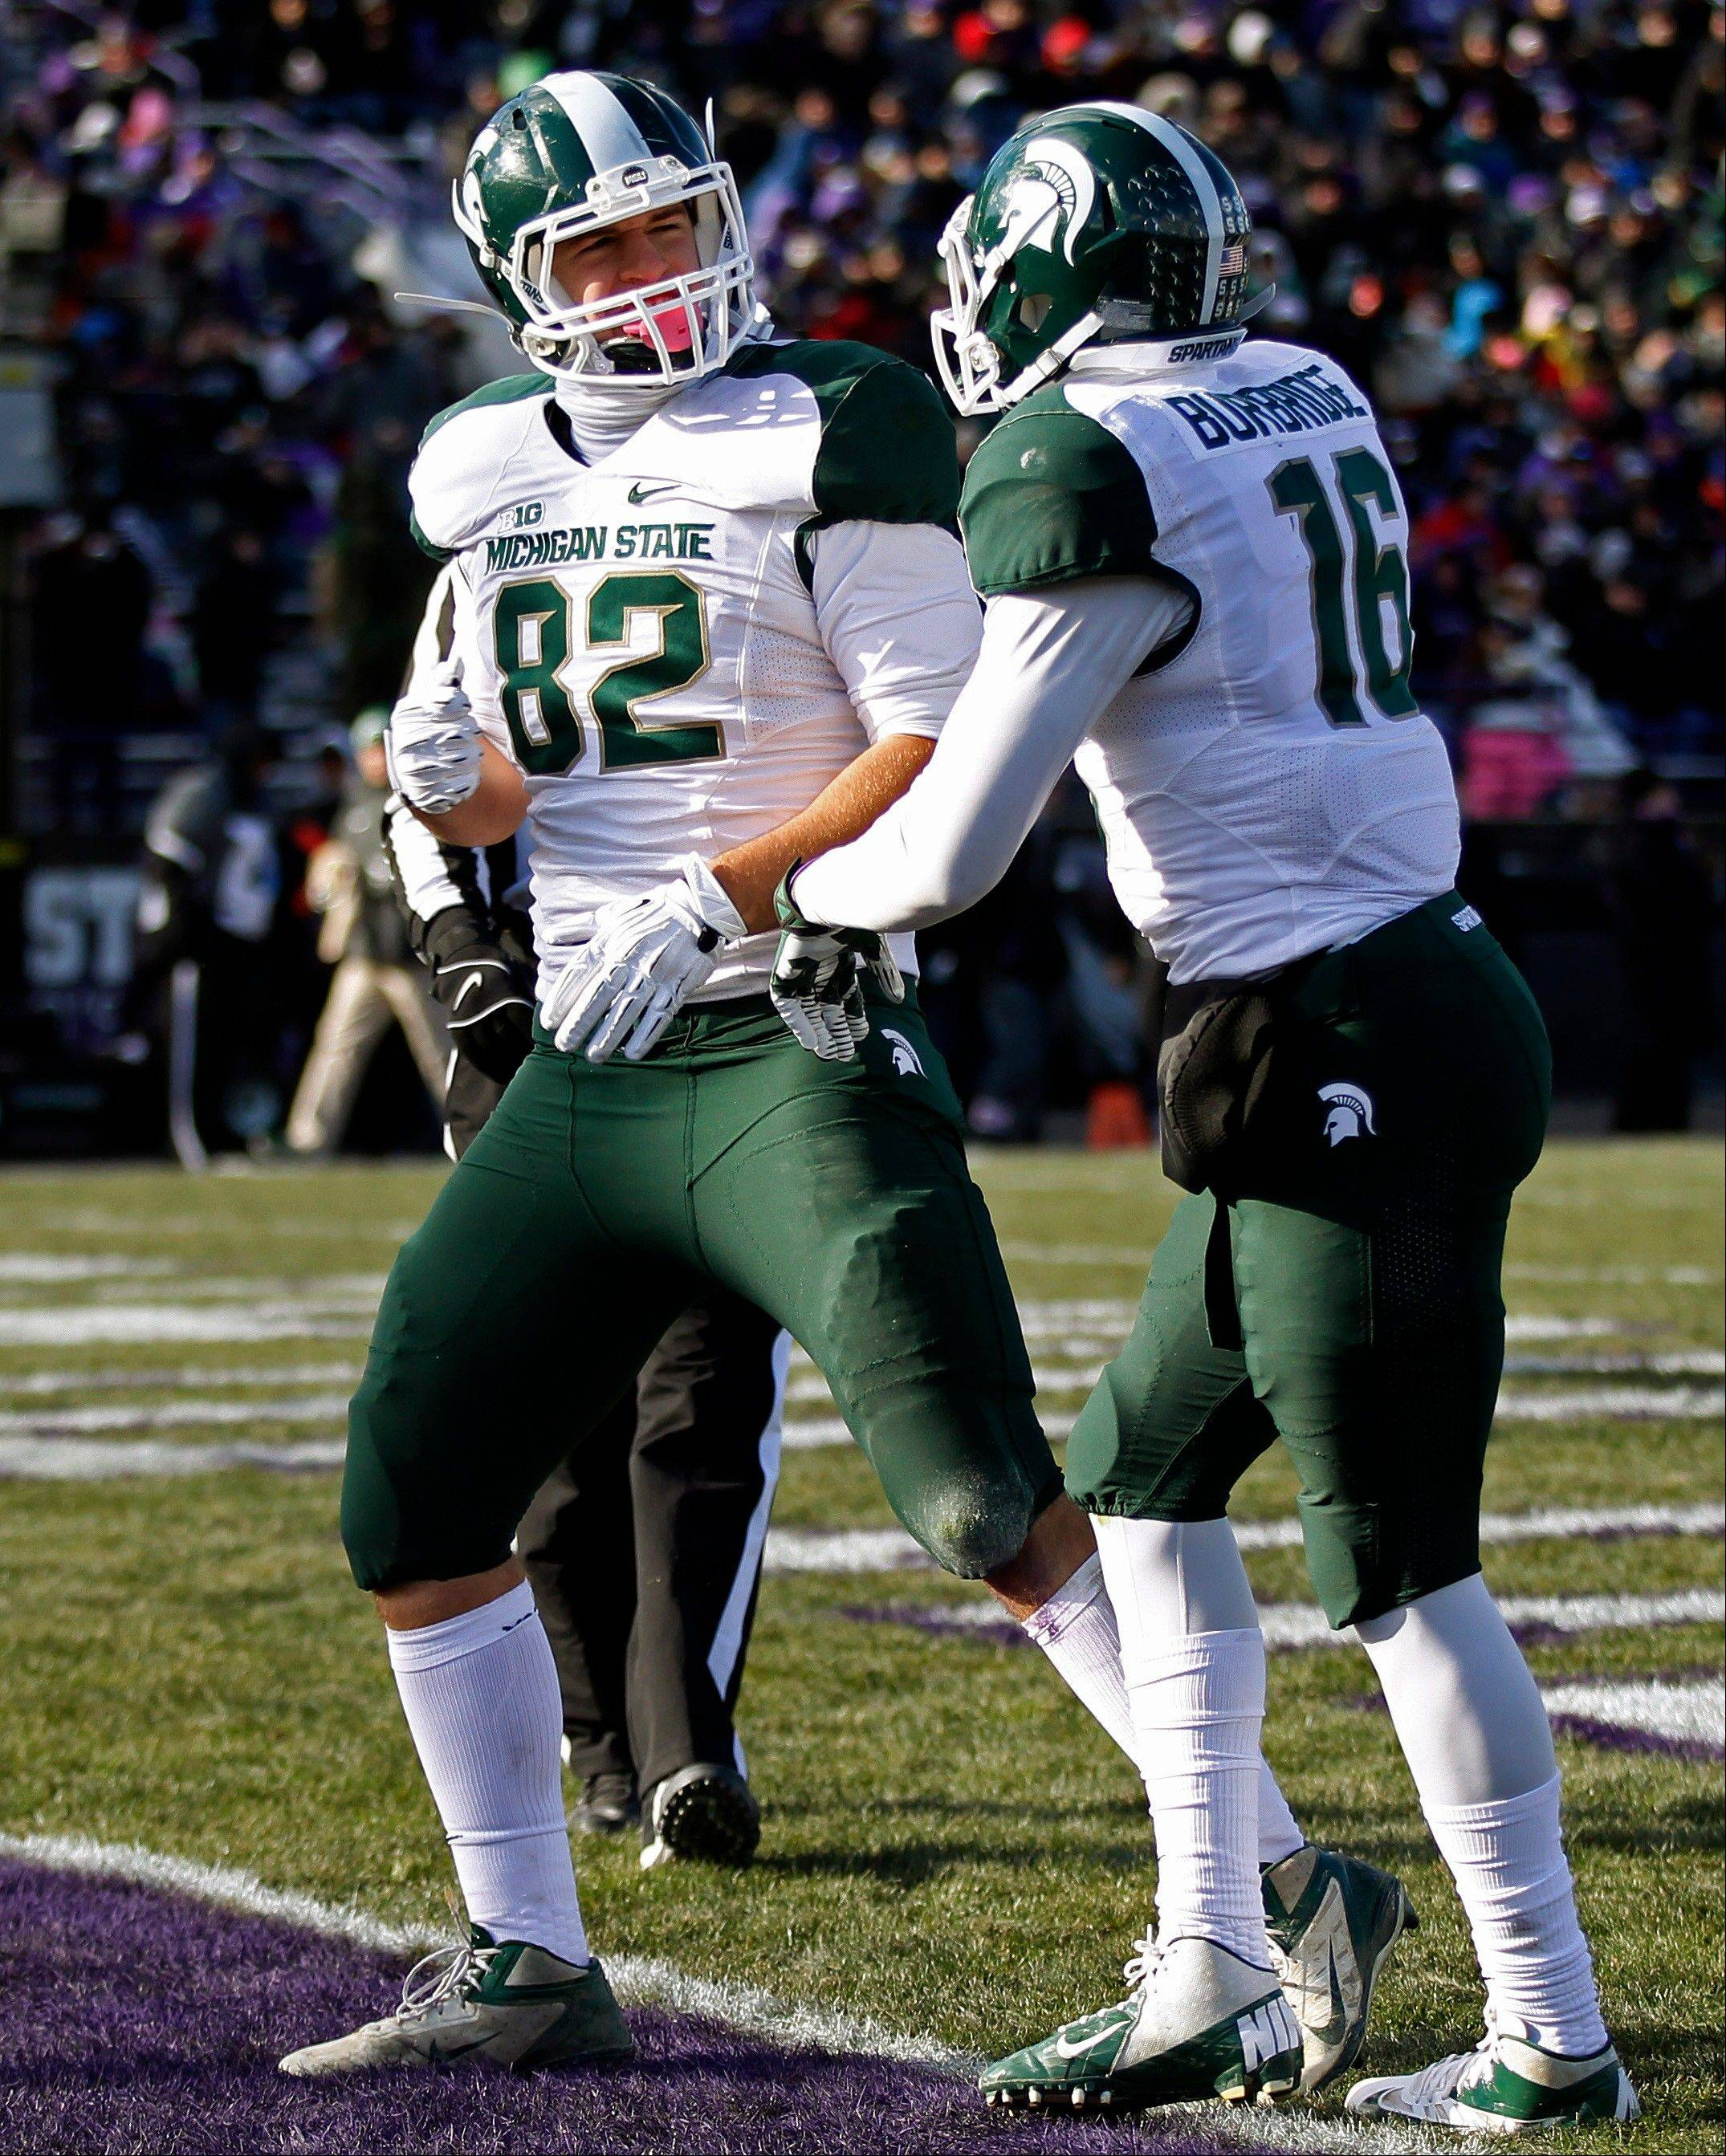 Michigan State tight end Josiah Price (82) celebrates scoring a touchdown with teammate wide receiver Aaron Burbridge (16) during the second half of last Saturday�s road win over Northwestern.